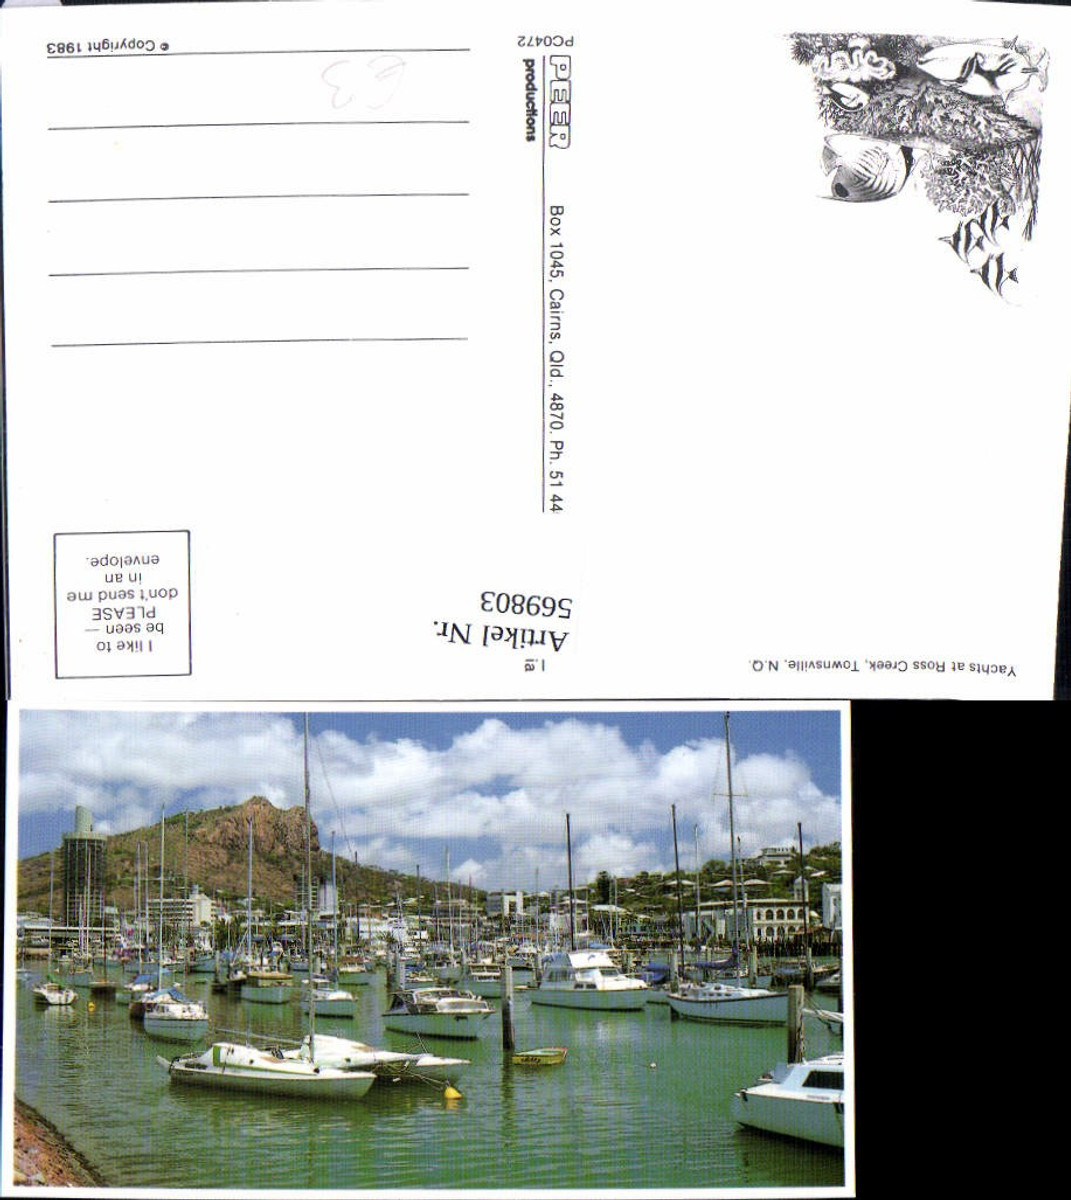 569803,Yachts at Ross Creek Townsville North Queensland Hafen Boote Australia günstig online kaufen